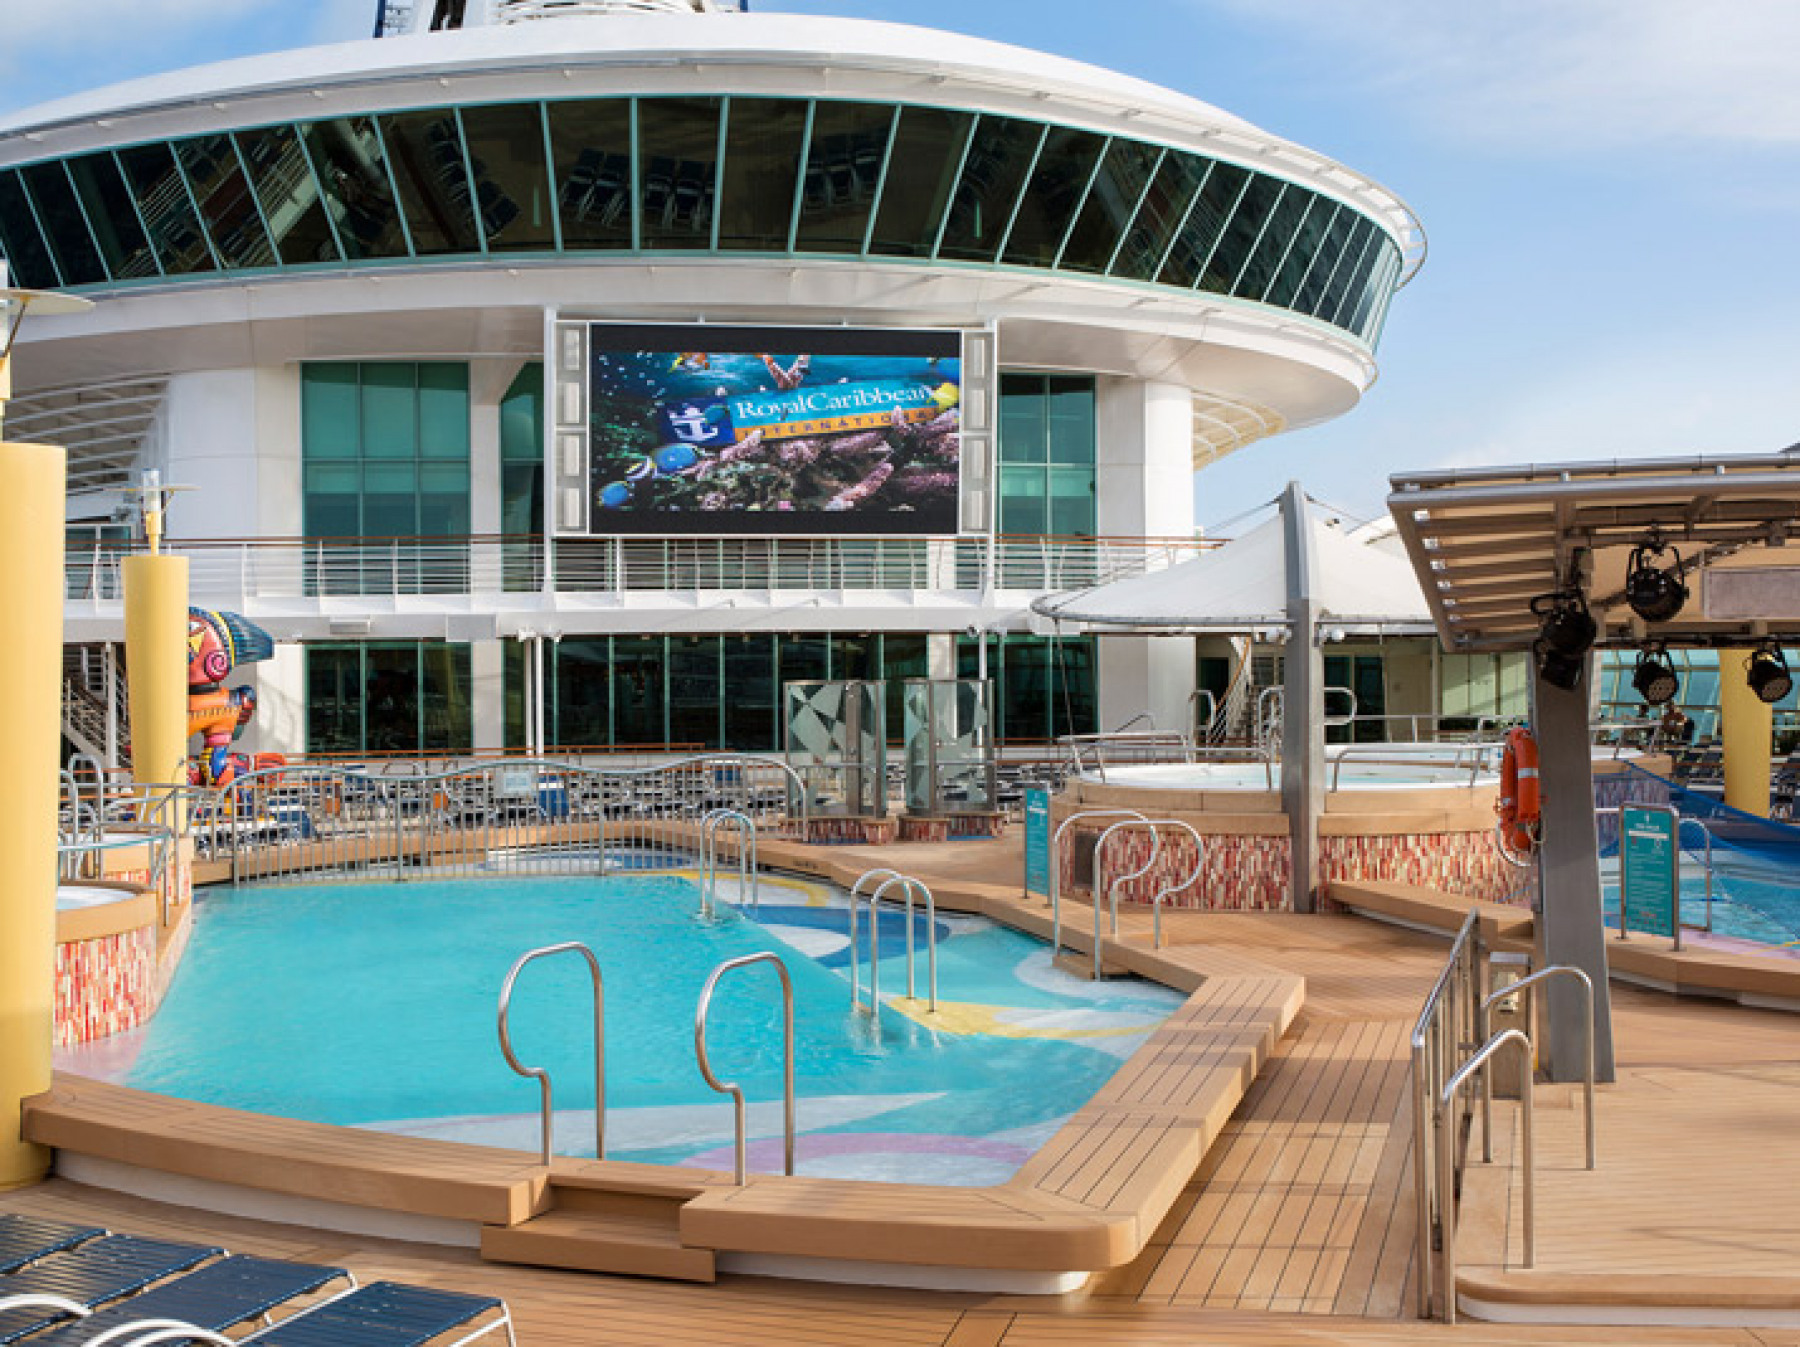 Royal Caribbean International Majesty of the Seas Exterior Outdoor Movie Screen.jpg